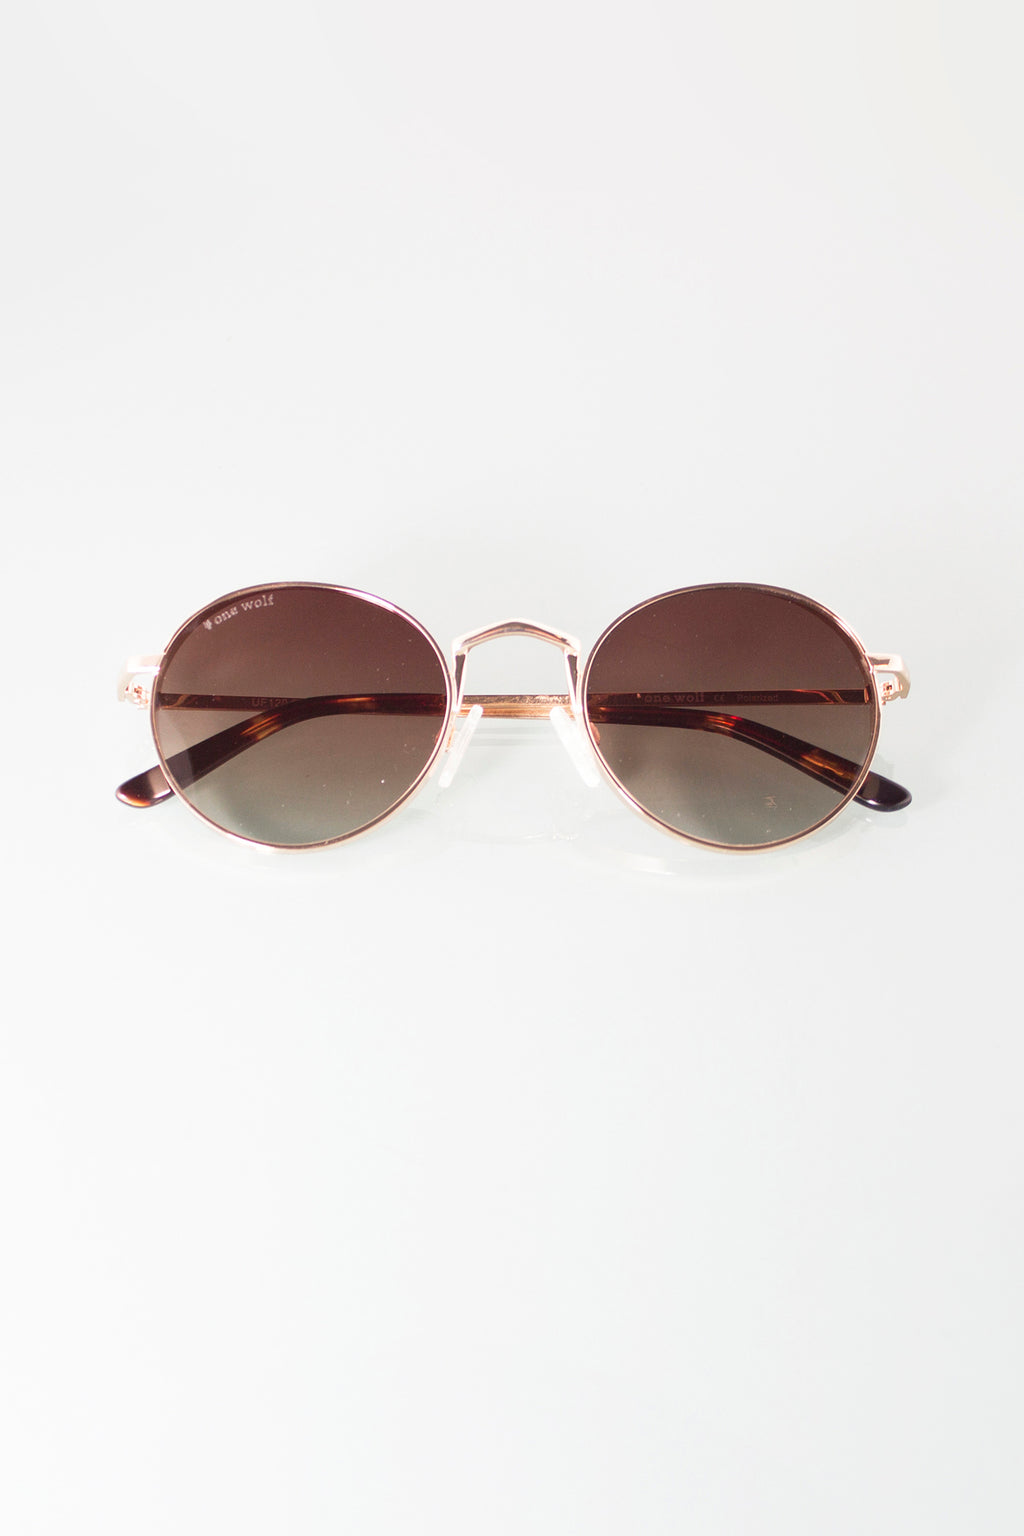 Sunglasses HARVEST GOLD